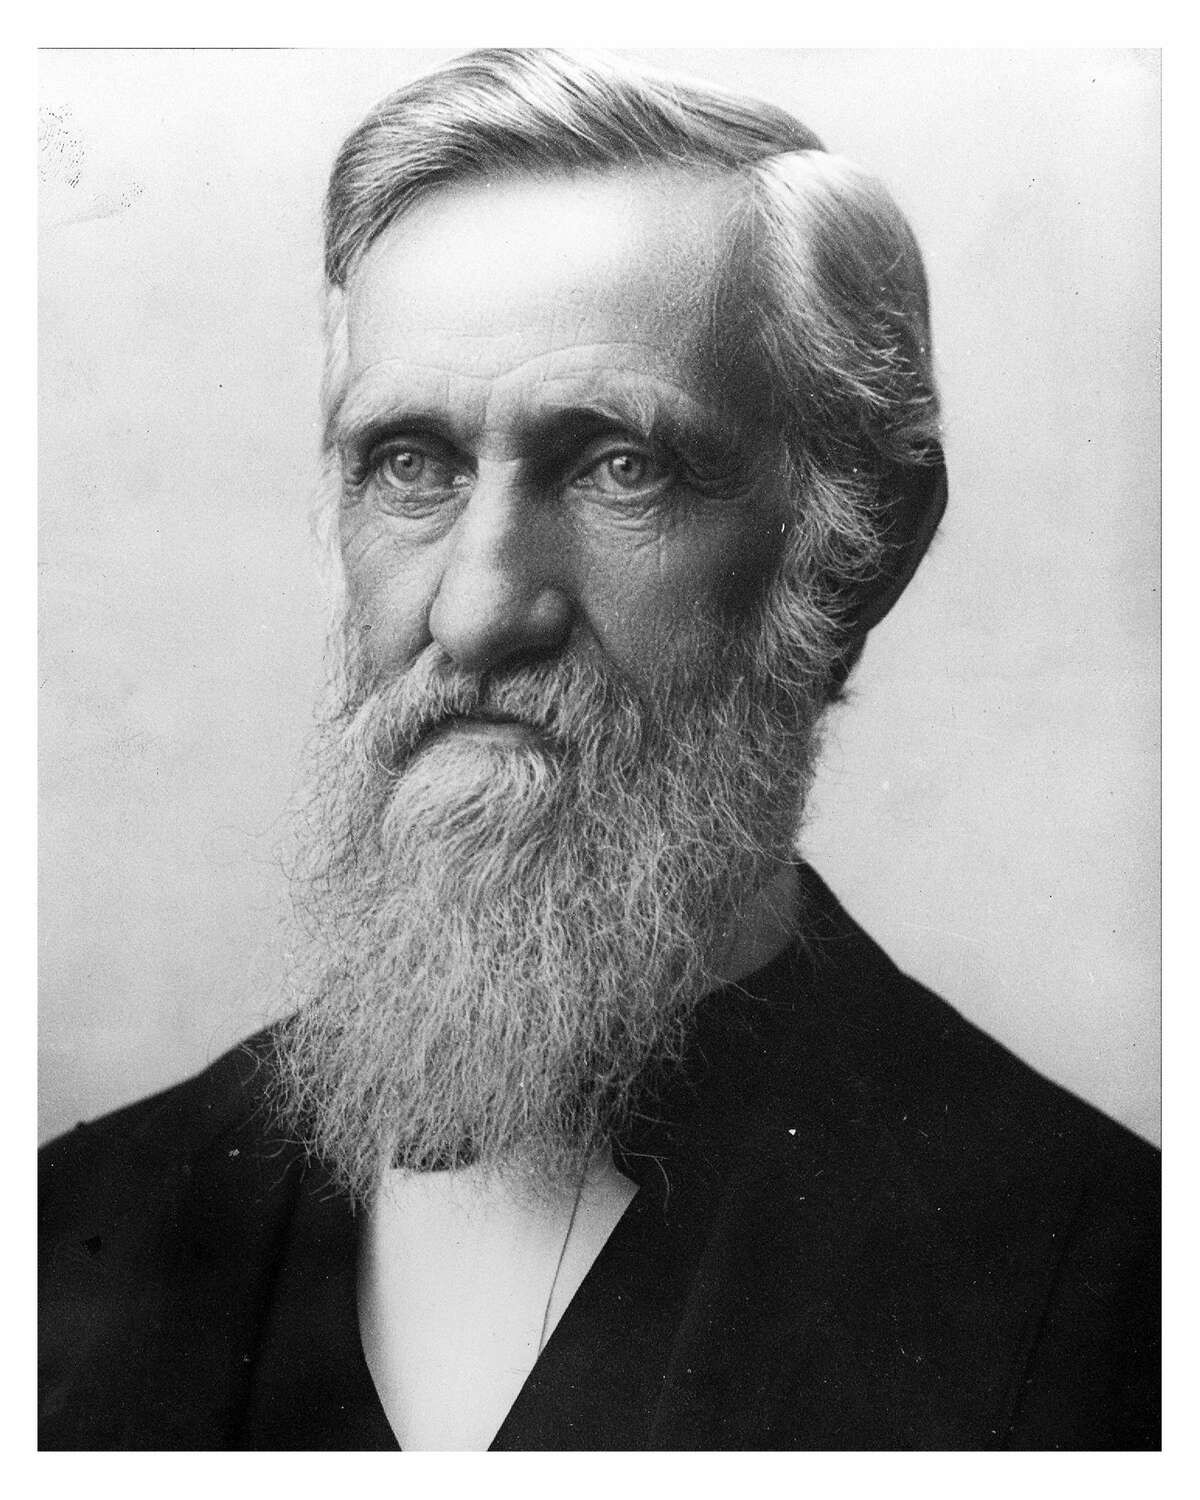 Upon the news of President Lincoln's passing in April of 1865, local attorney, T.J. Ramsdell (pictured here) provided eulogistic remarks and prepared resolutions regarding the tragedy.